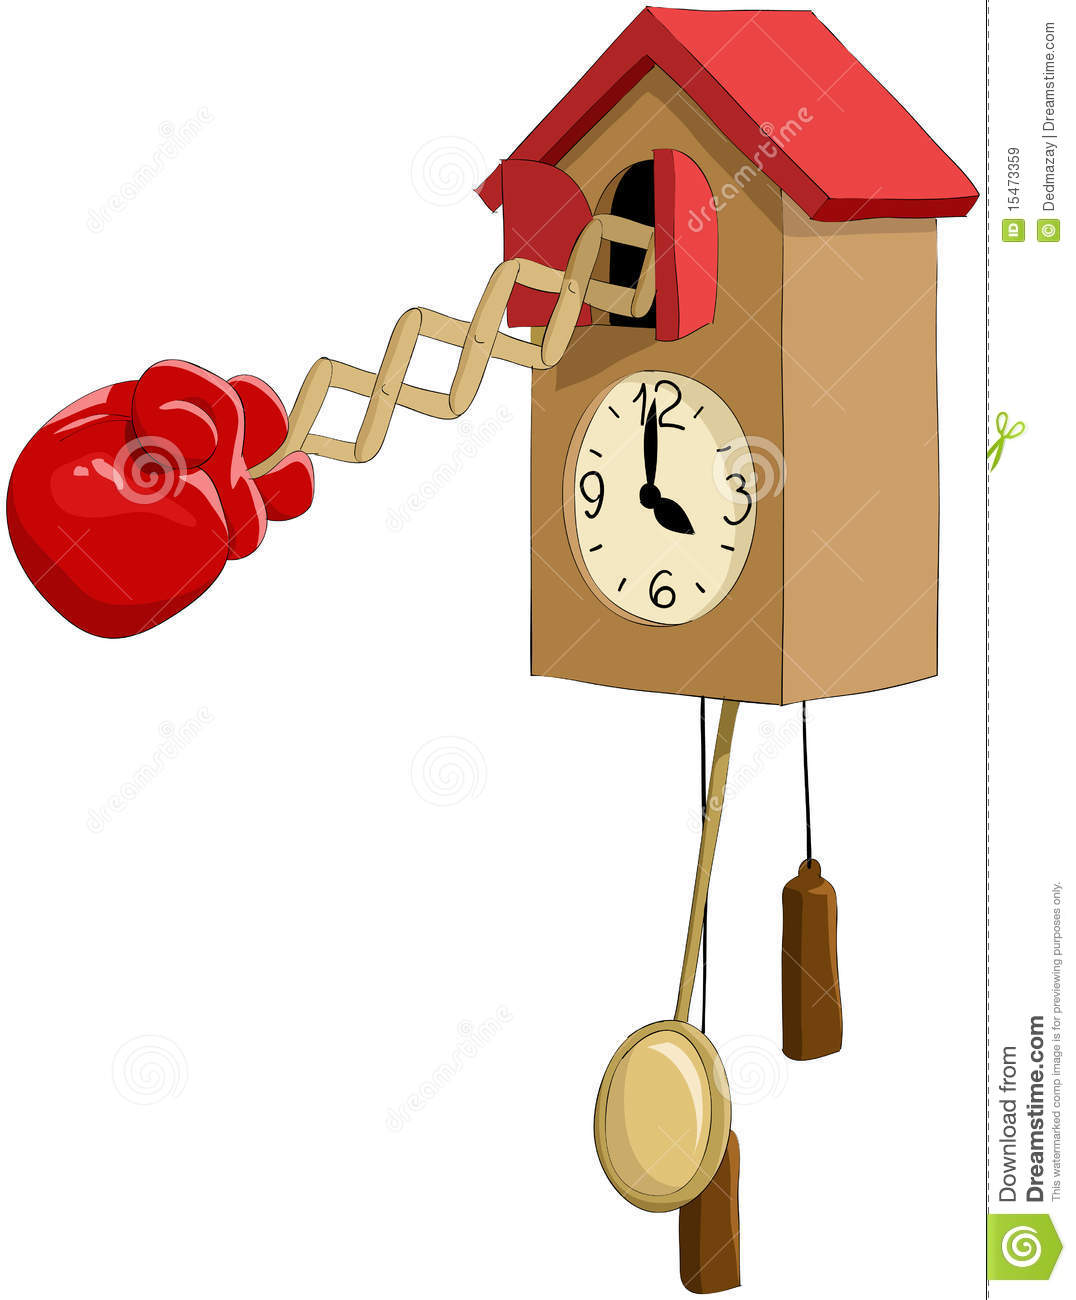 funny cuckoo clock in brown home with red roof design for home accessories ideas